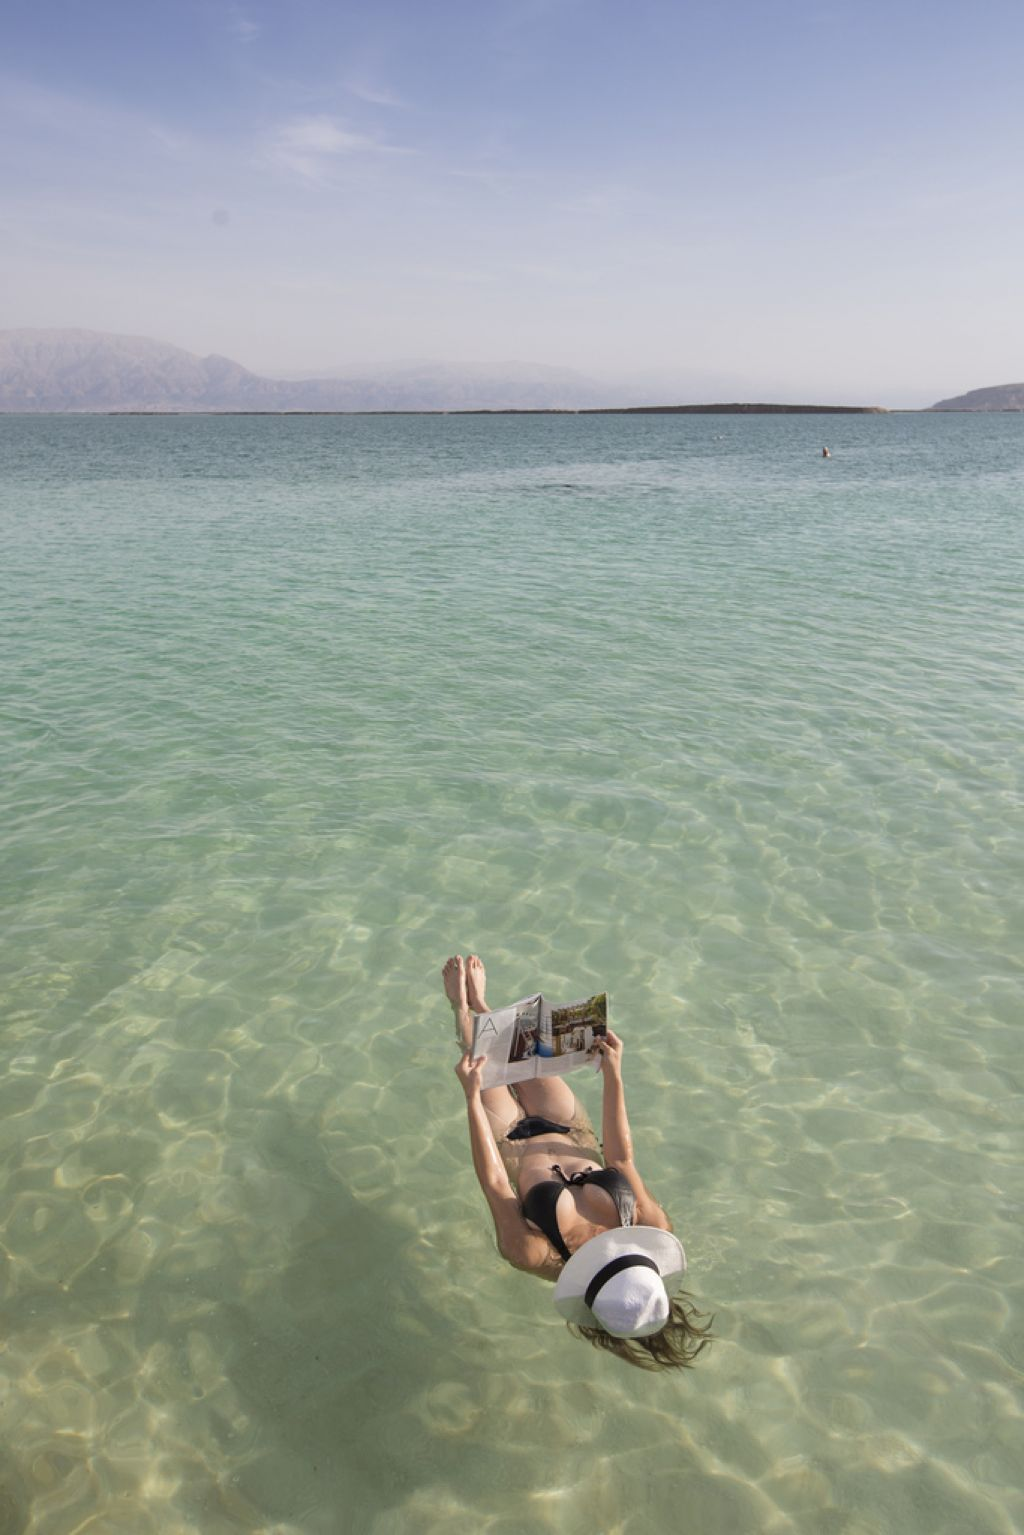 dead sea2 Floating on the Dead Sea by Itamar Grinberg